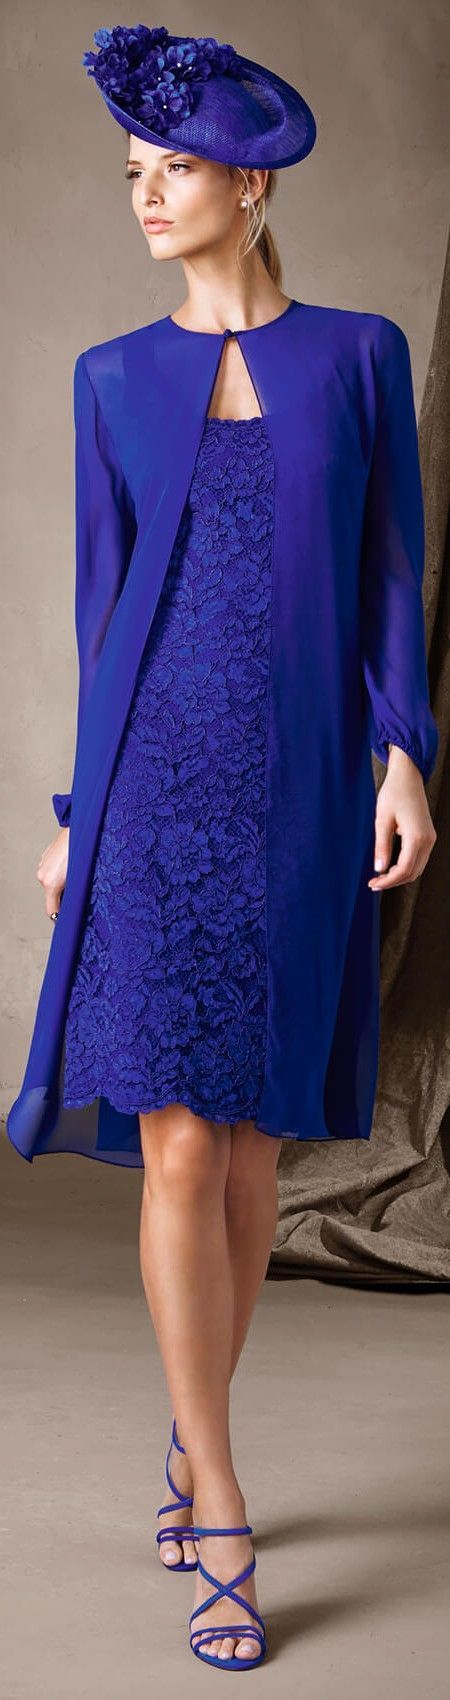 Pronovias 2017 blue   women fashion outfit clothing style apparel @roressclothes closet ideas